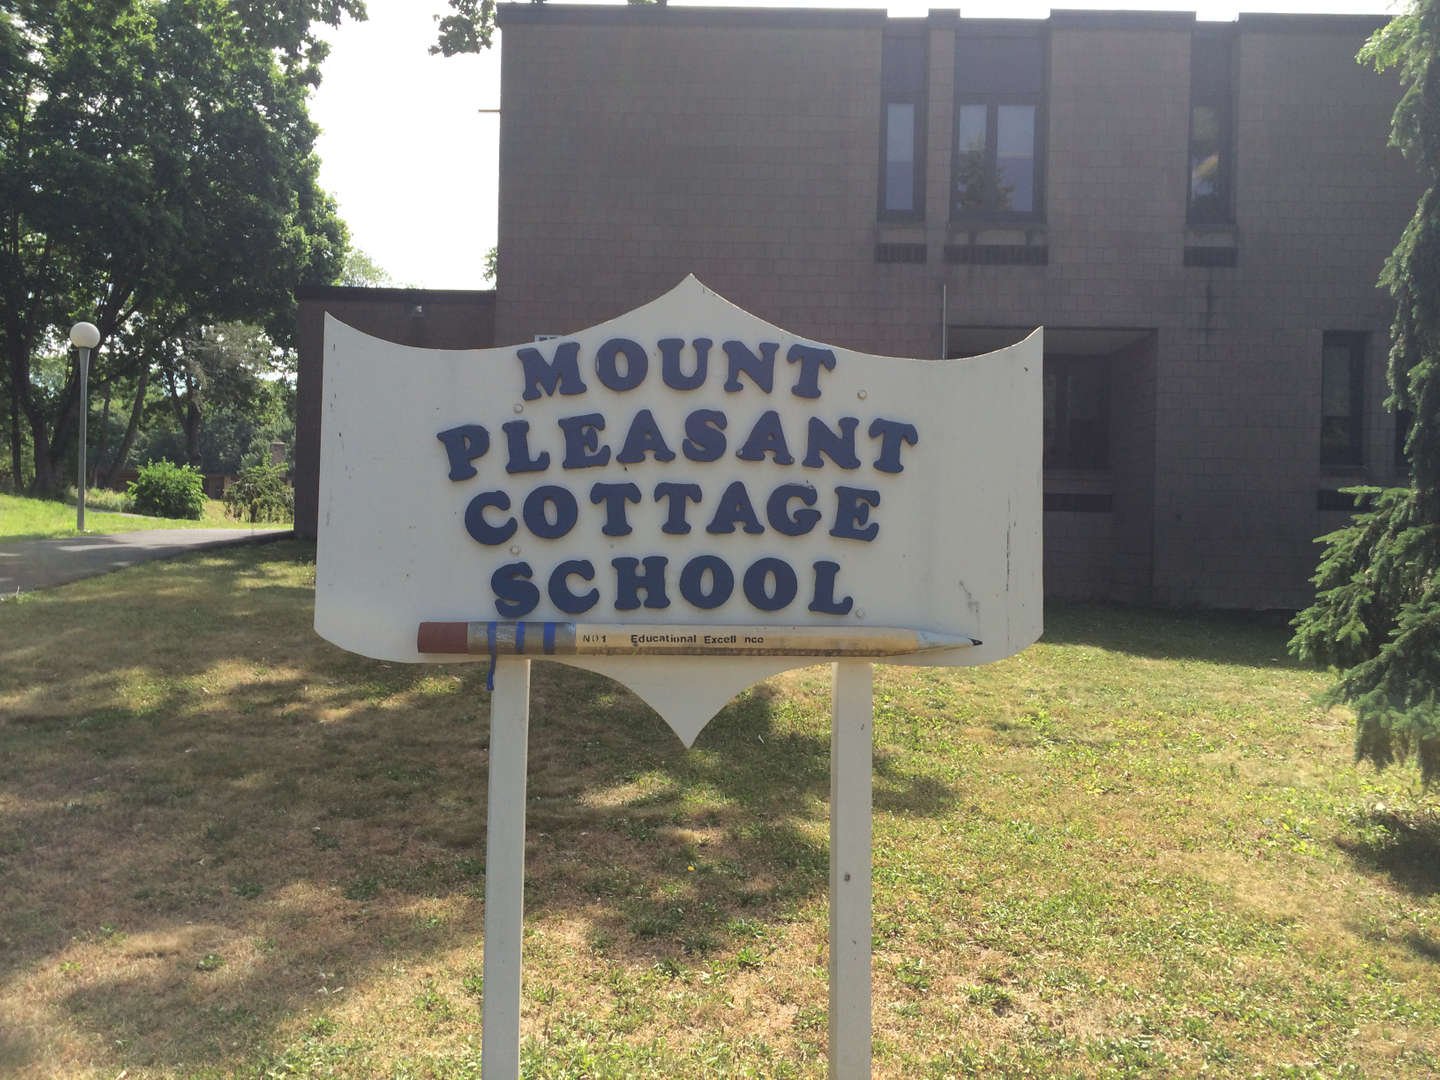 Mount Pleasant Cottage Campus- Mount Pleasant Cottage School